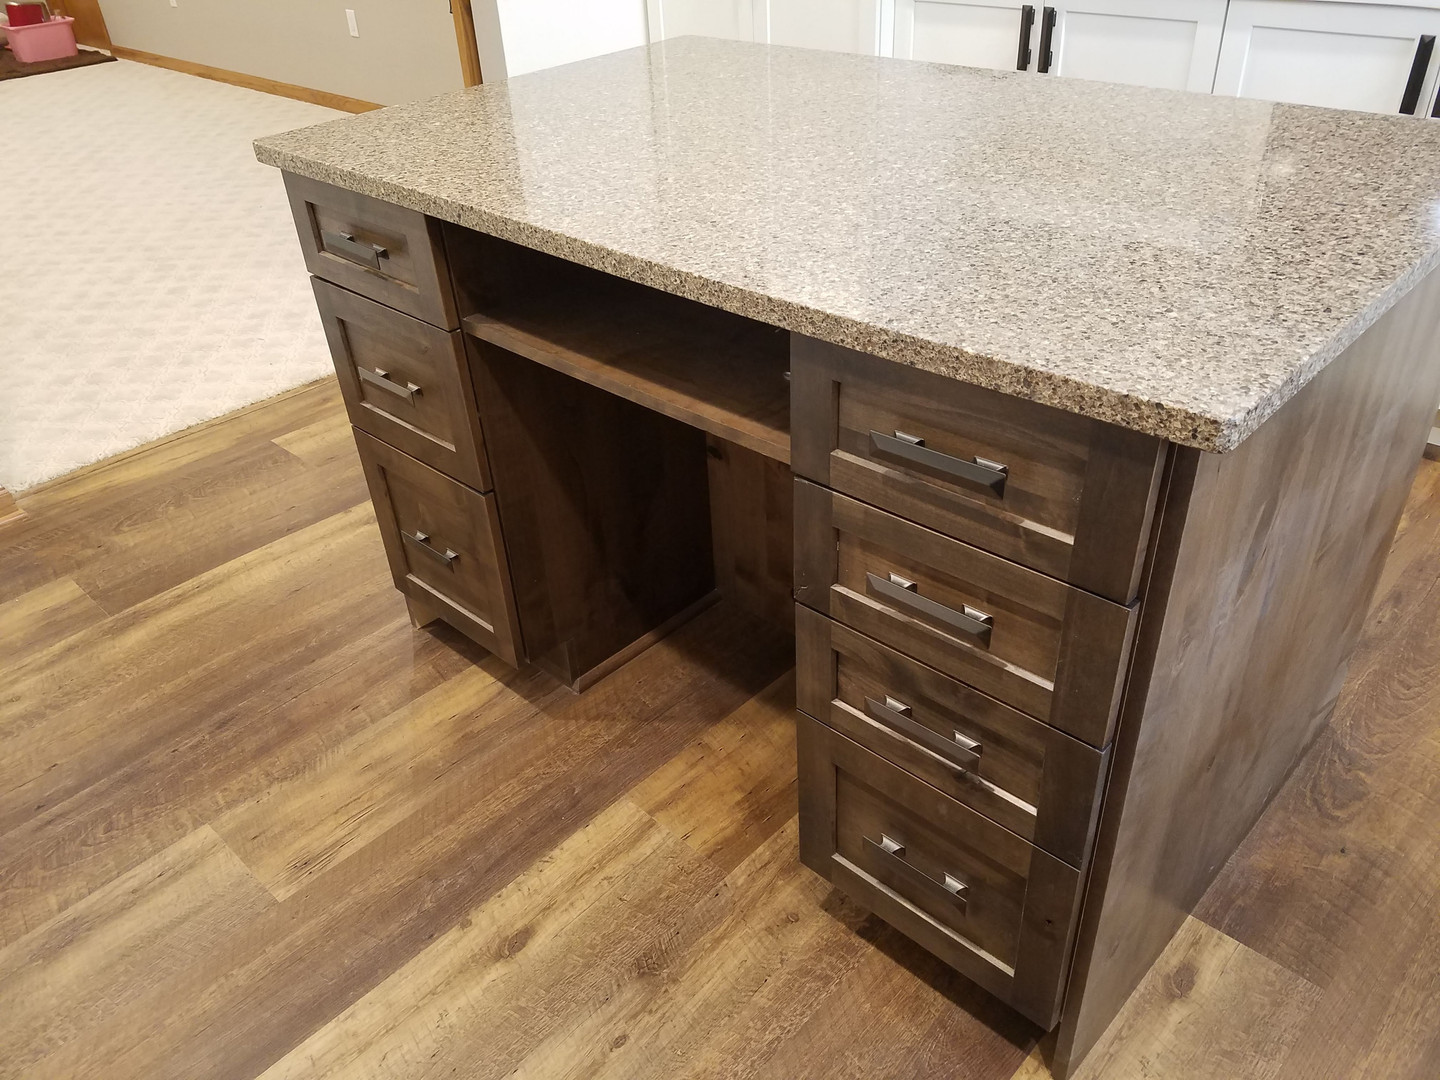 Island Storage & Recycled Quartz Top